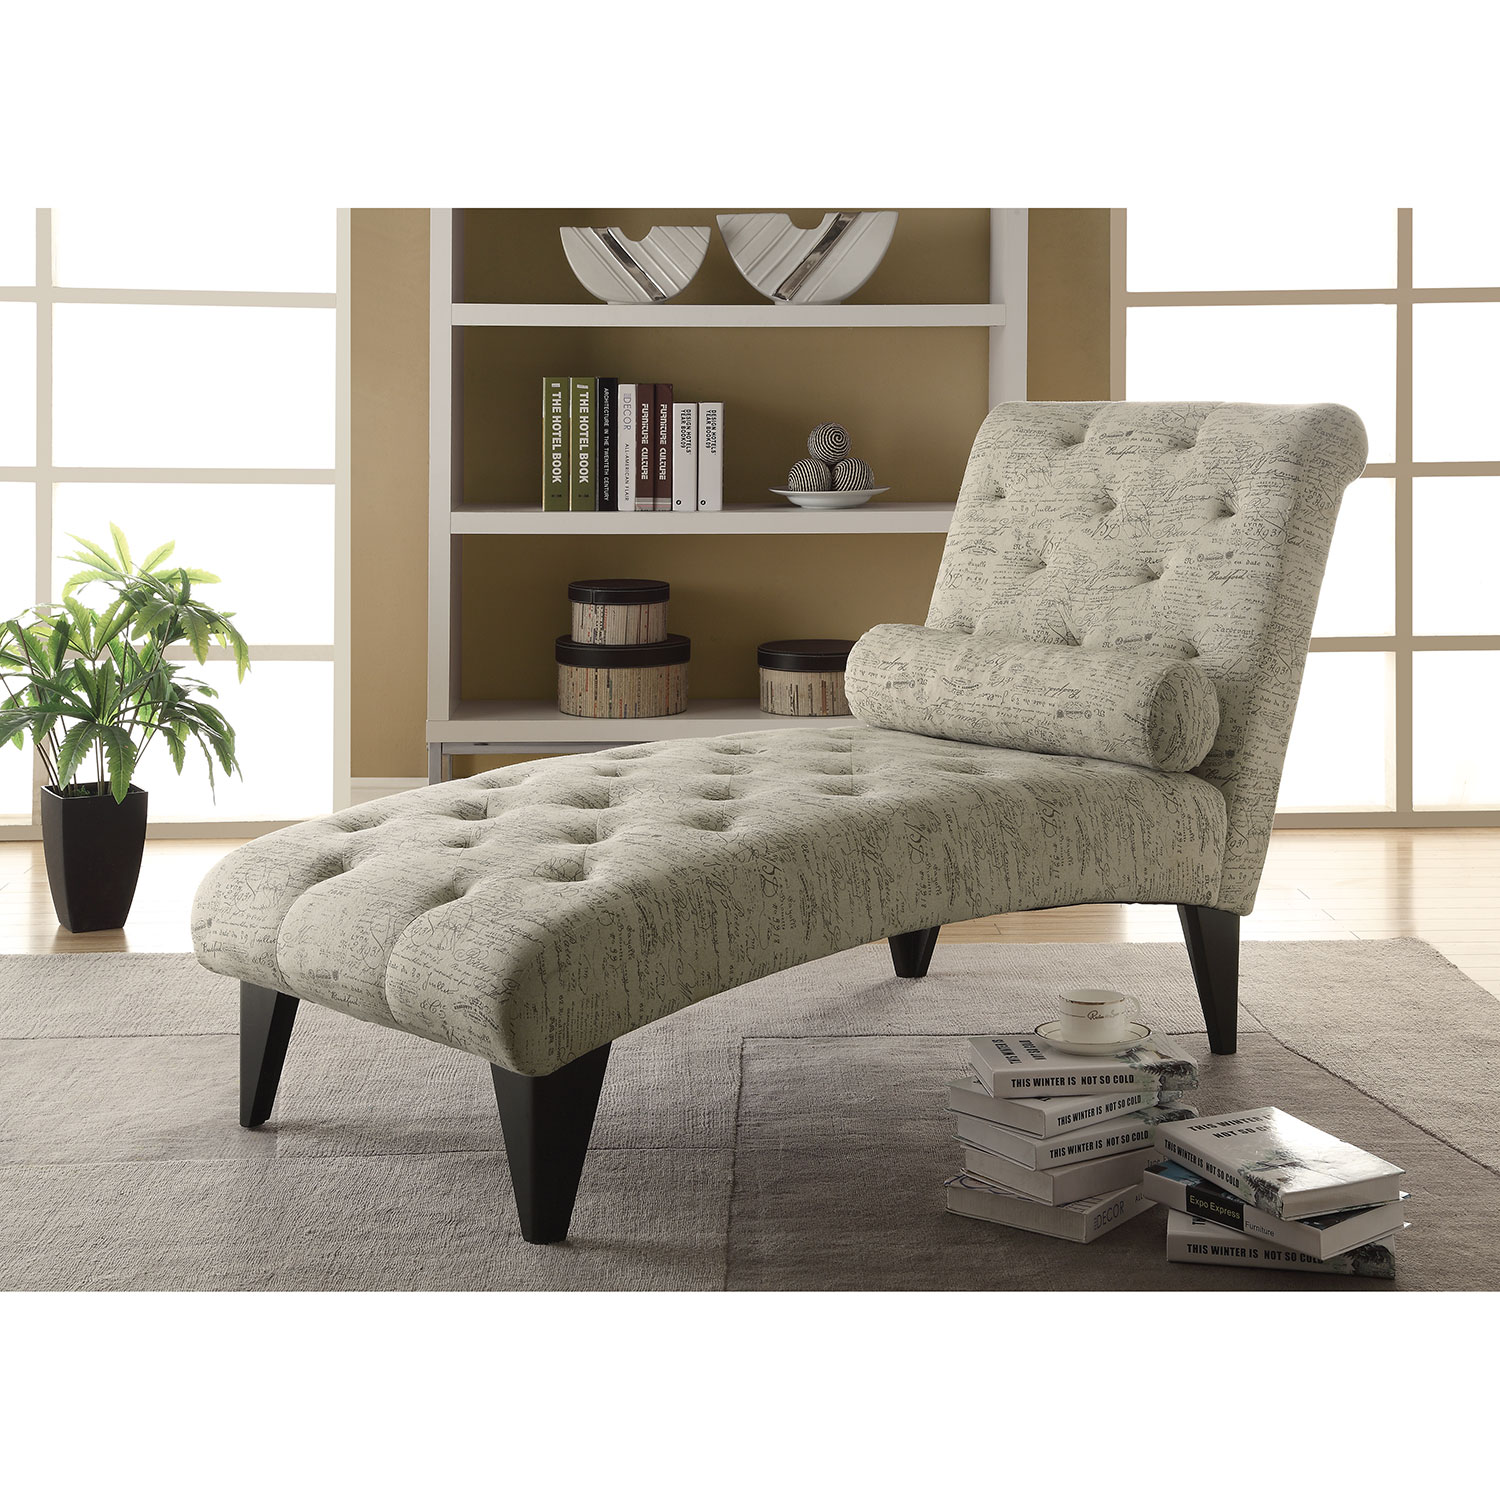 patio depot the loungers chairs outdoors and albany canada wicker home seating chaise lounger en furniture lounge p categories